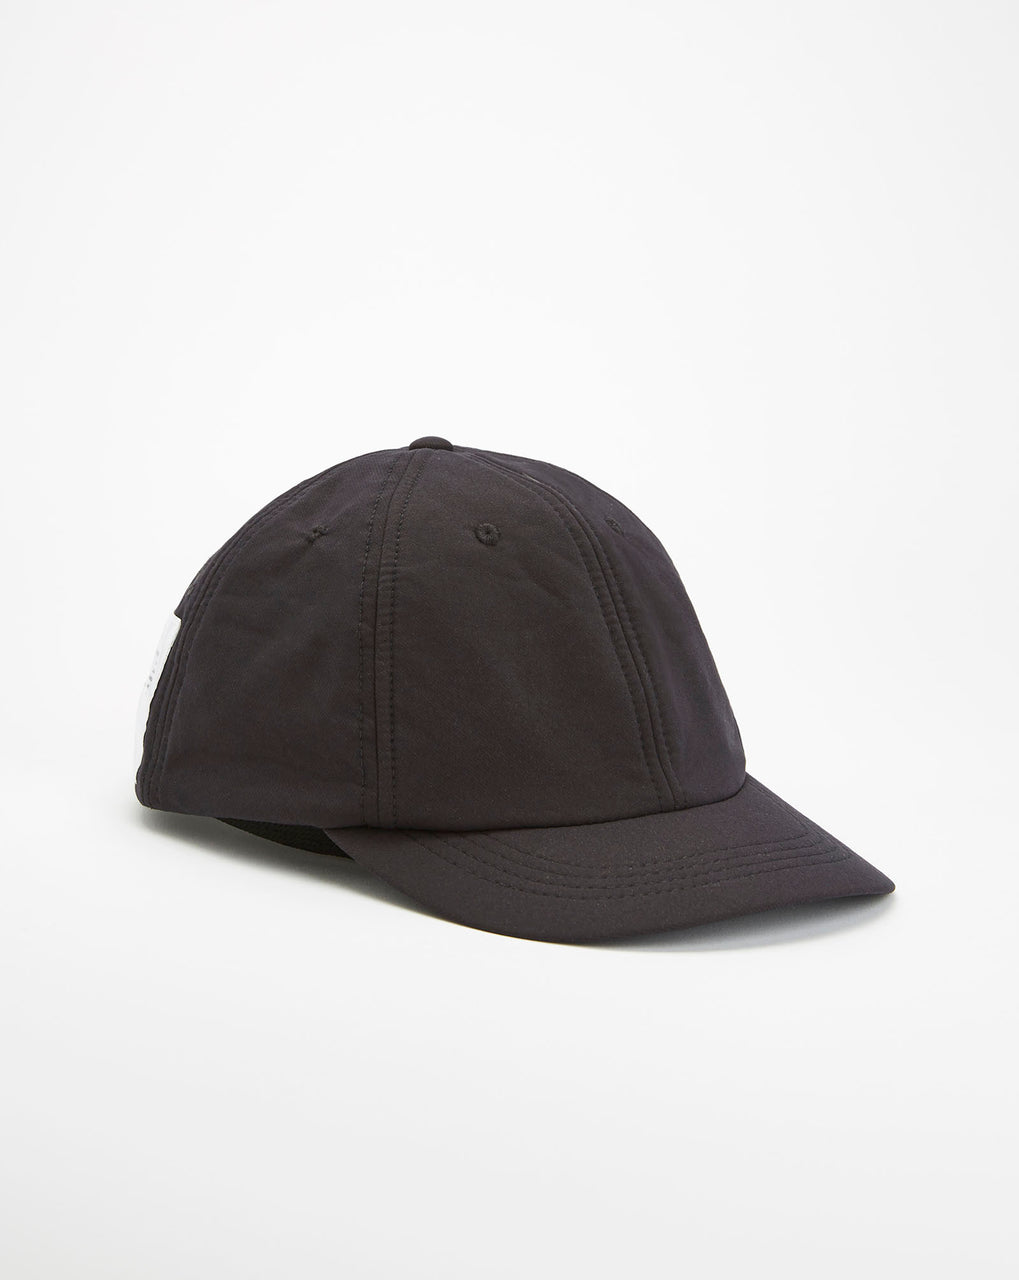 Satisfy Justice Merino Running Cap (Black)